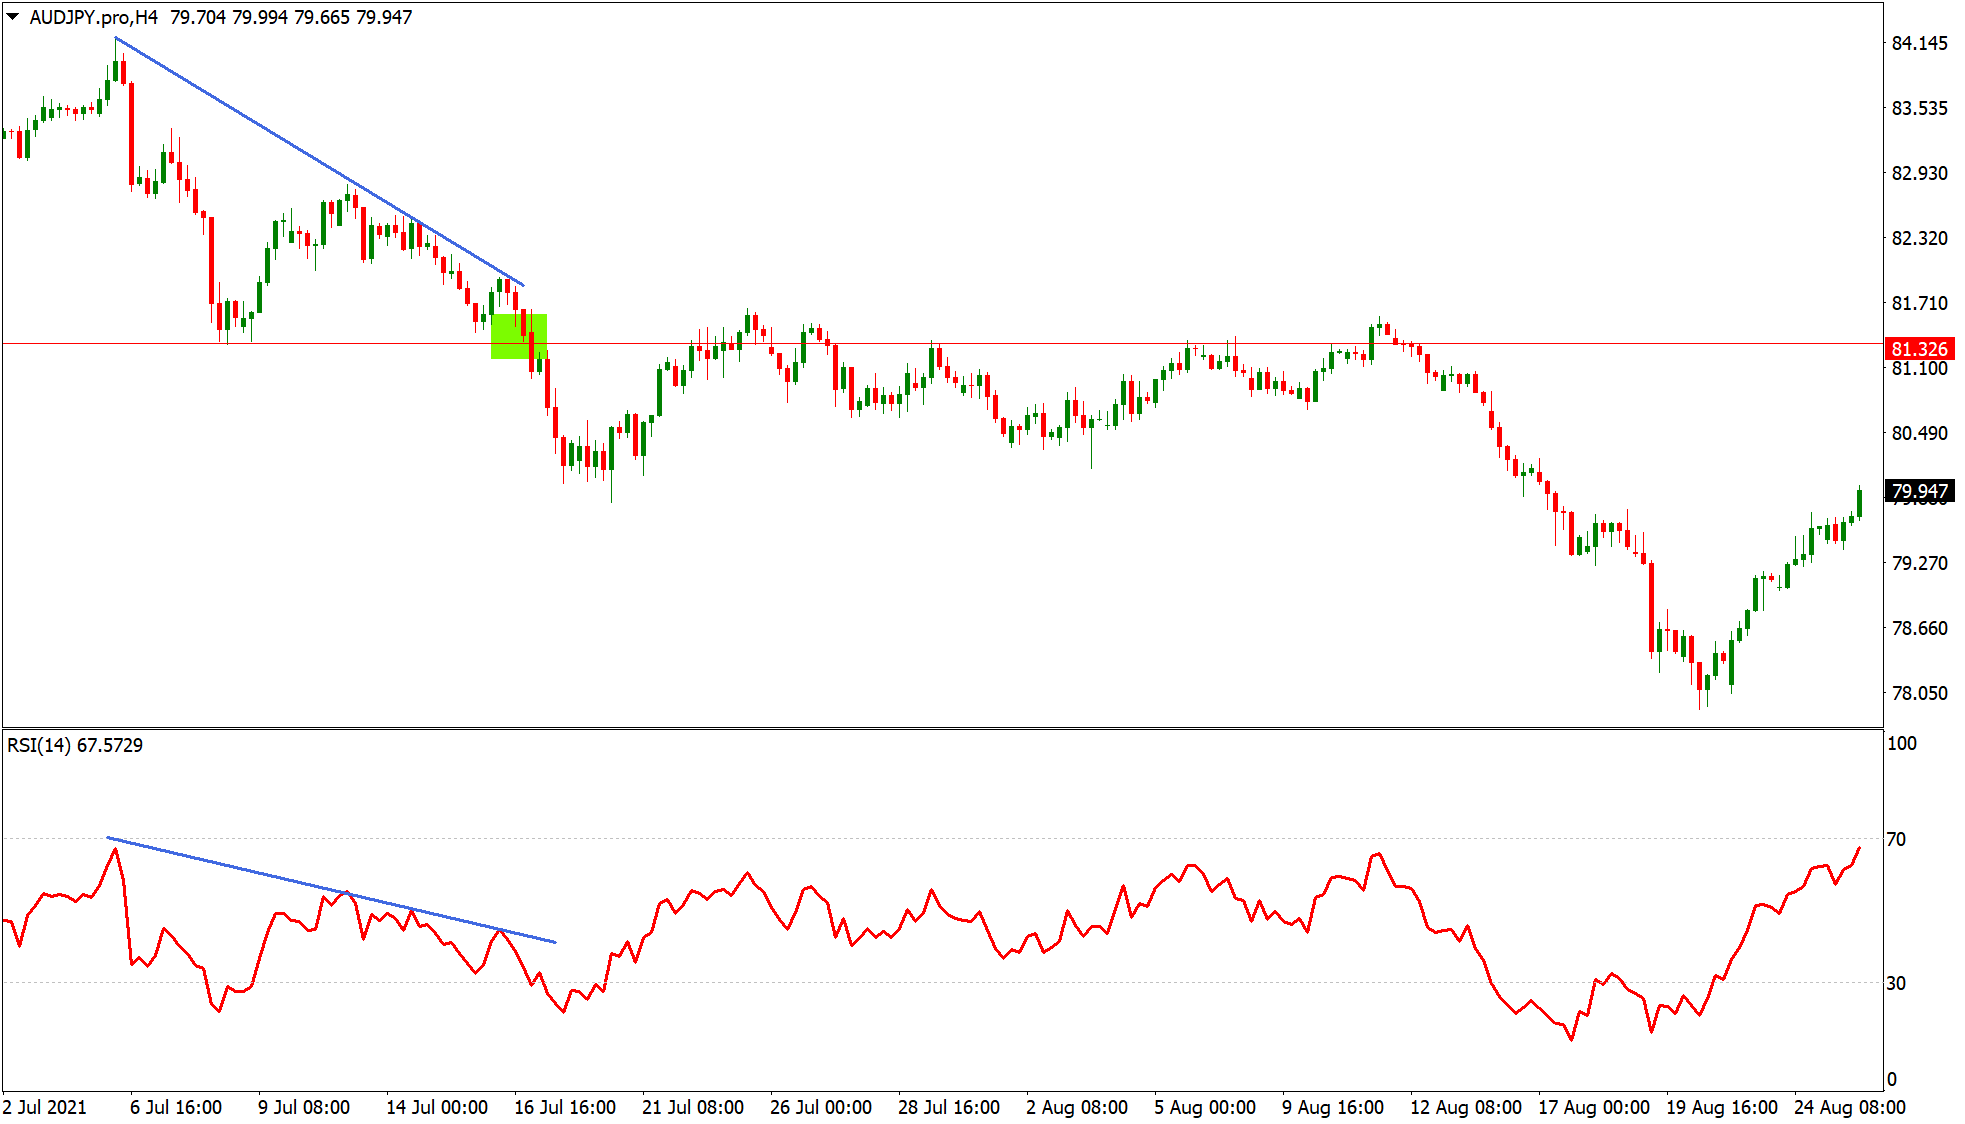 RSI indicator showing breakout entry